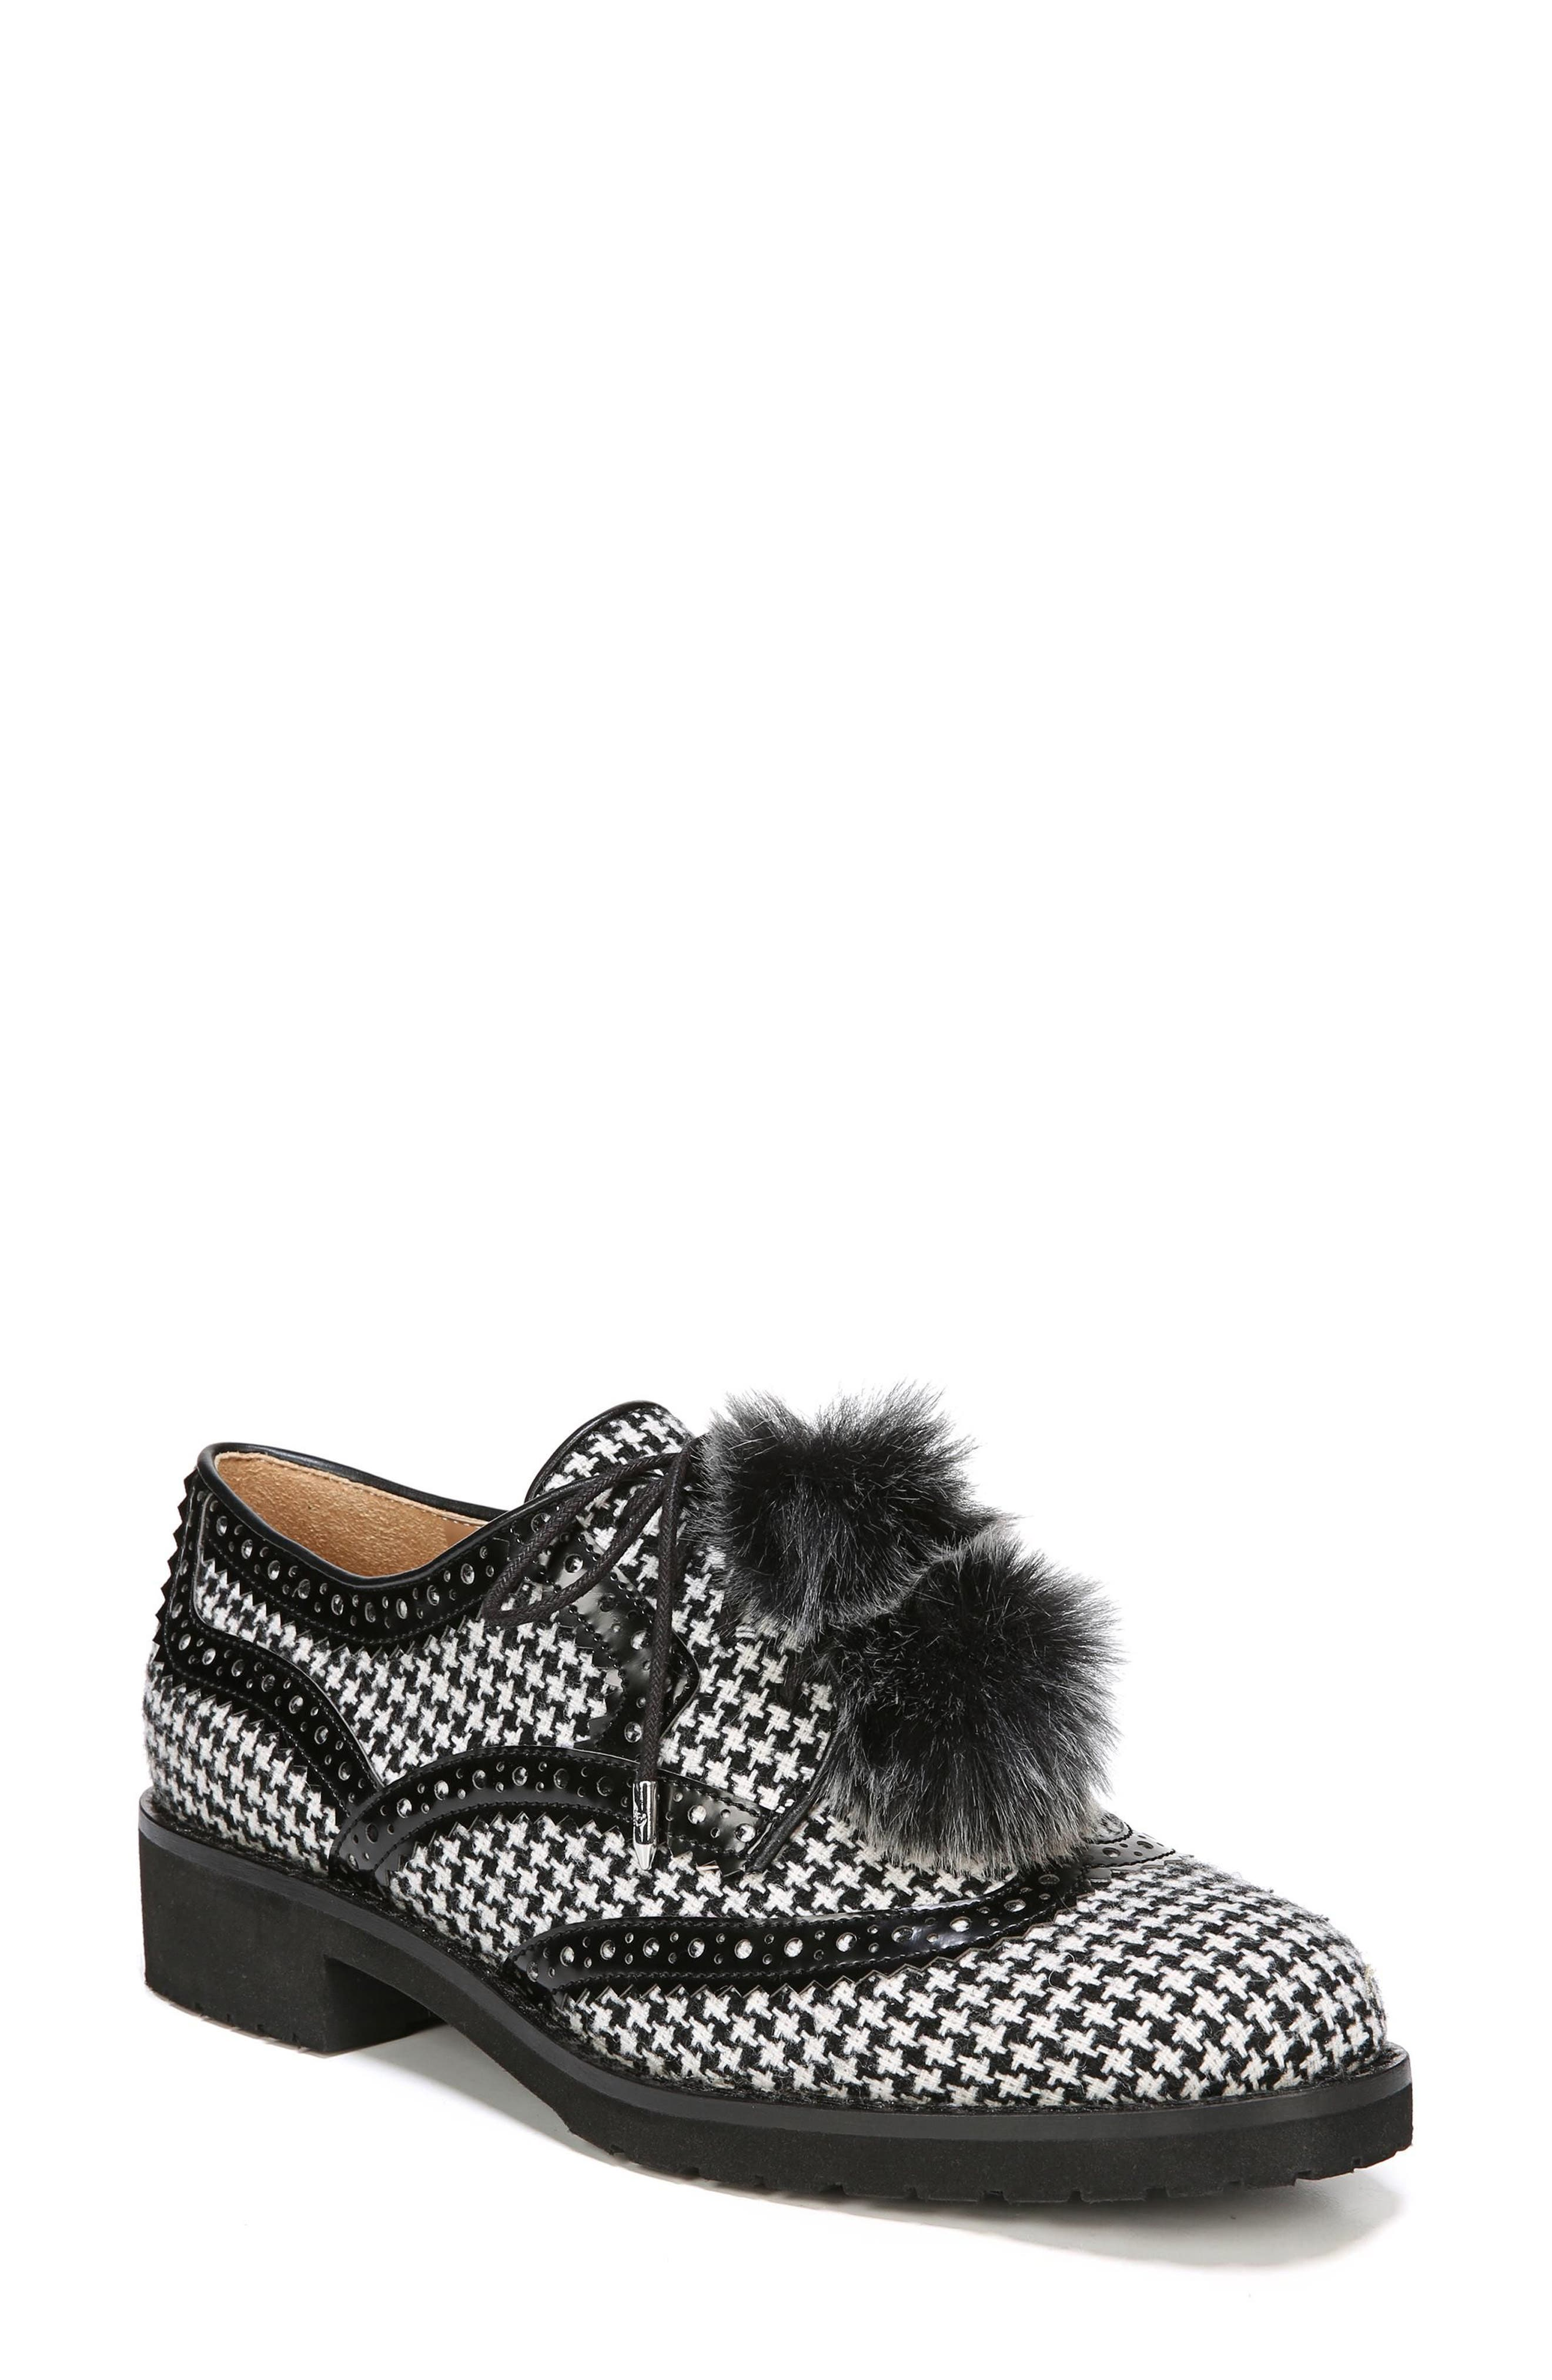 Dahl Oxford with Faux Fur Pompom,                         Main,                         color, Black/ White Houndstooth